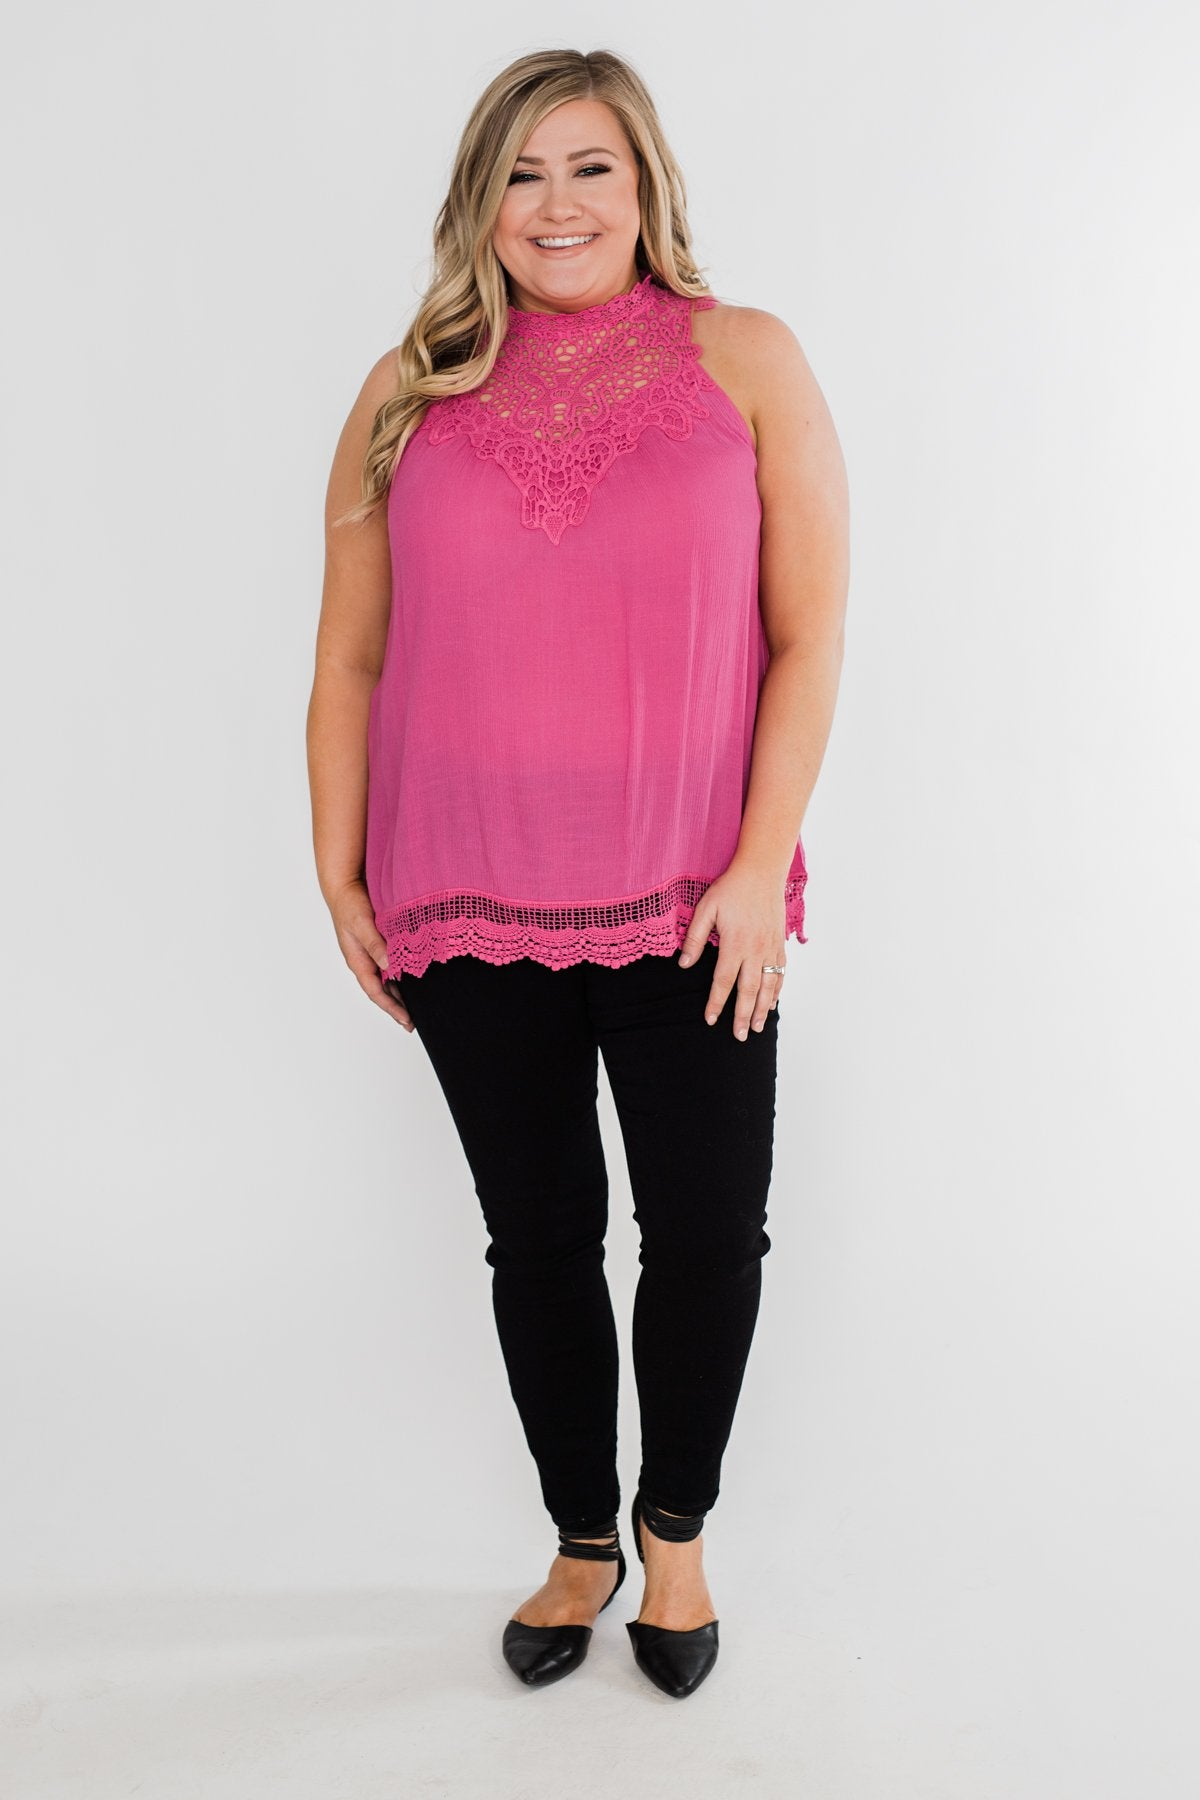 I Choose You Lace Tank Top- Fuchsia